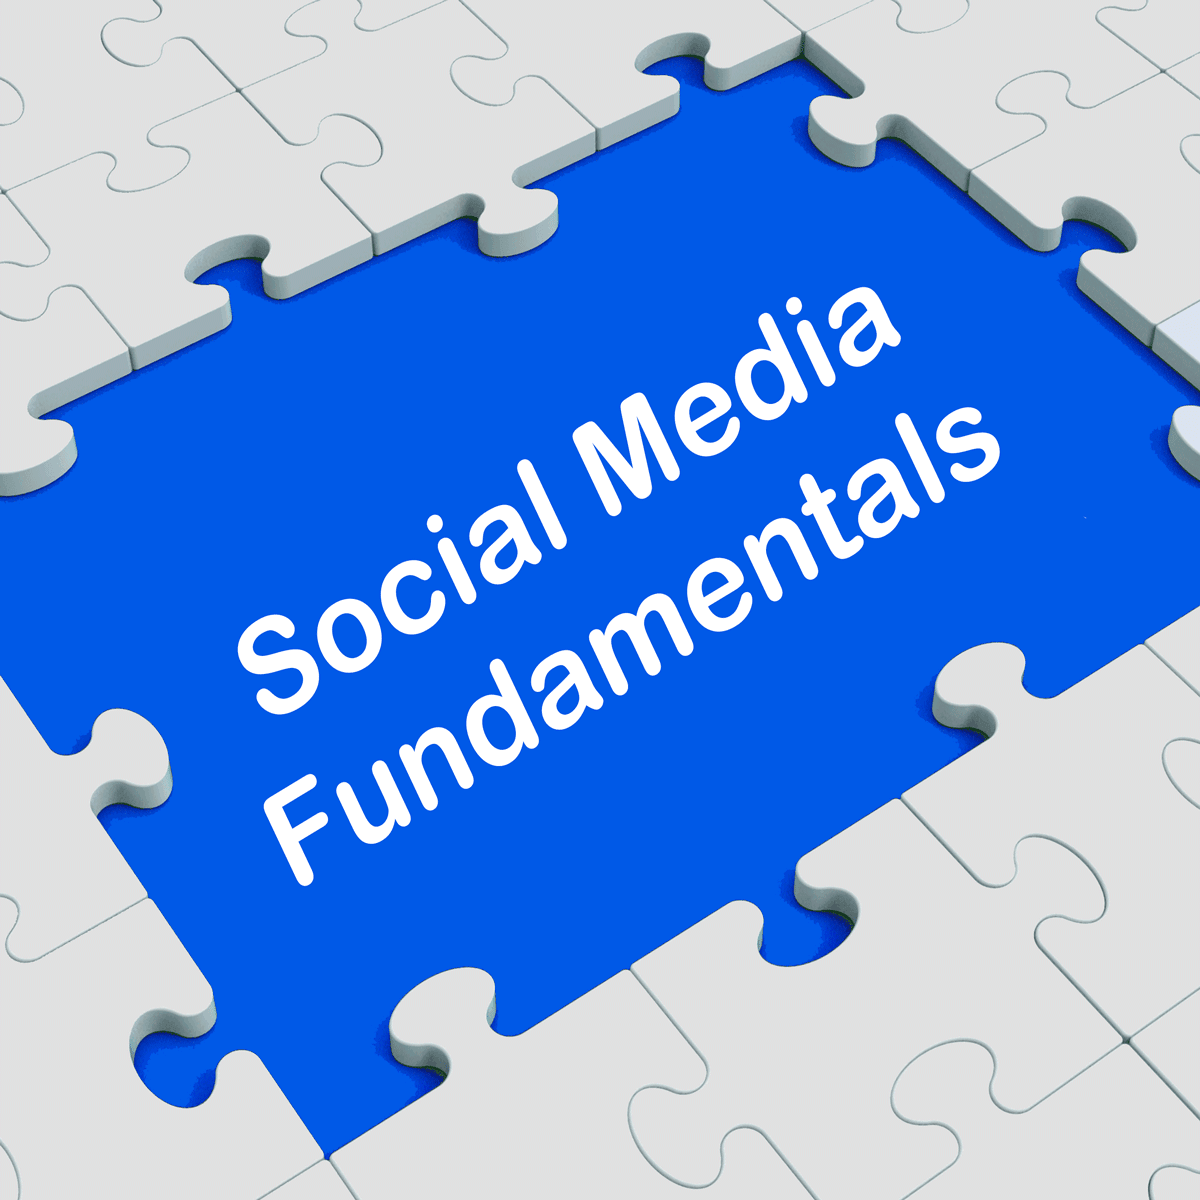 social media fundamentals for SME